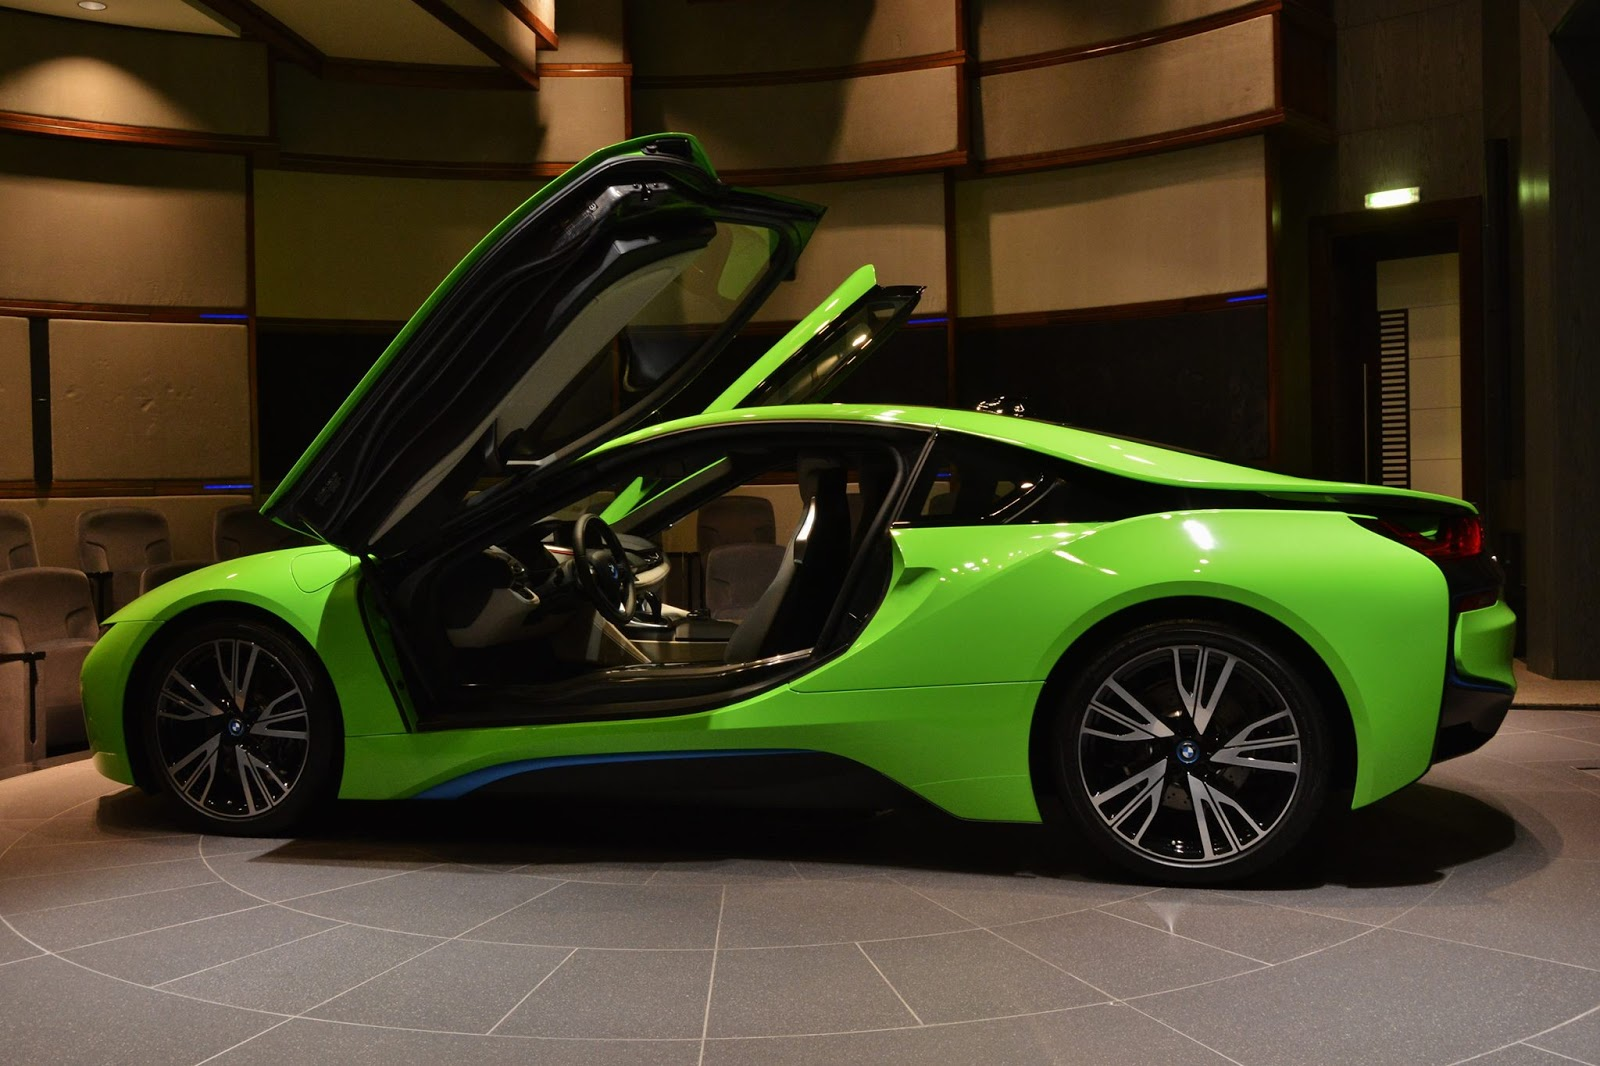 Car Paint Colors >> Ever Seen a Lime Green BMW i8 Before? | Carscoops